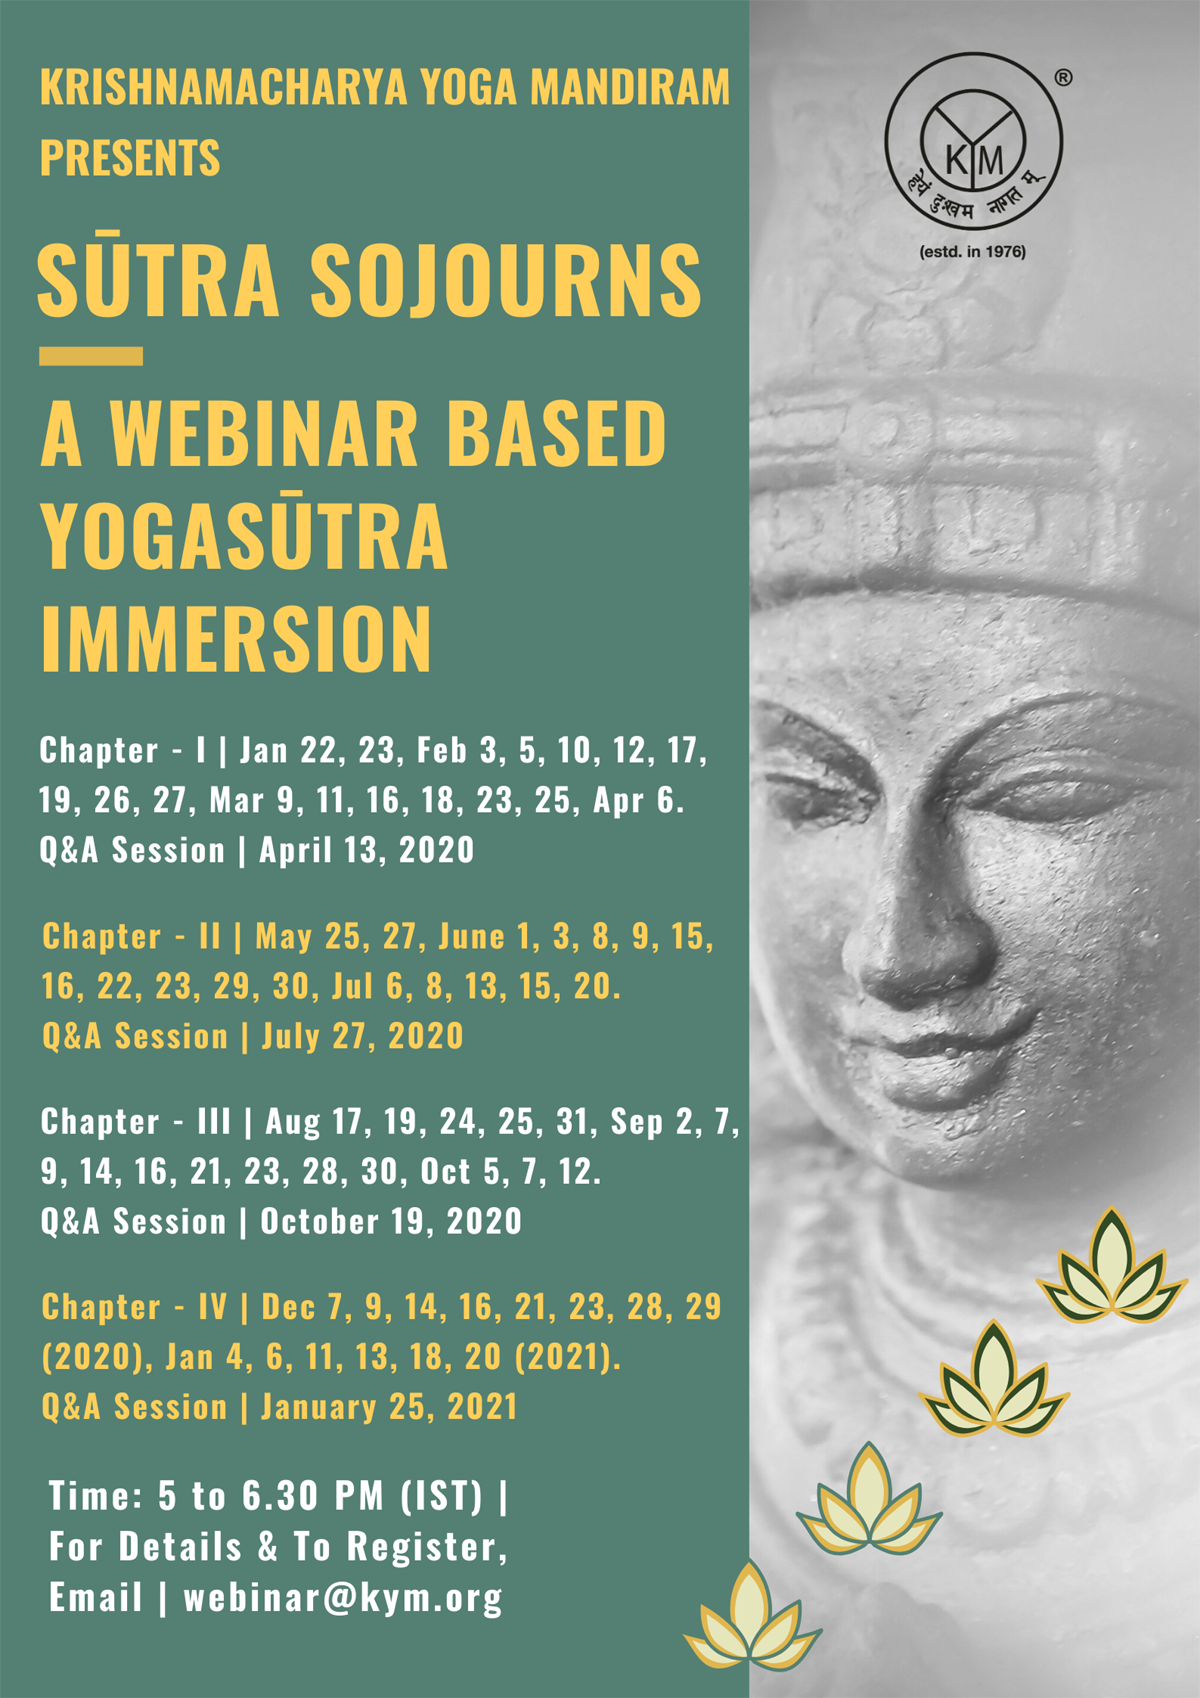 Sutra Sojourns | A Webinar Based Yogasutra Immersion